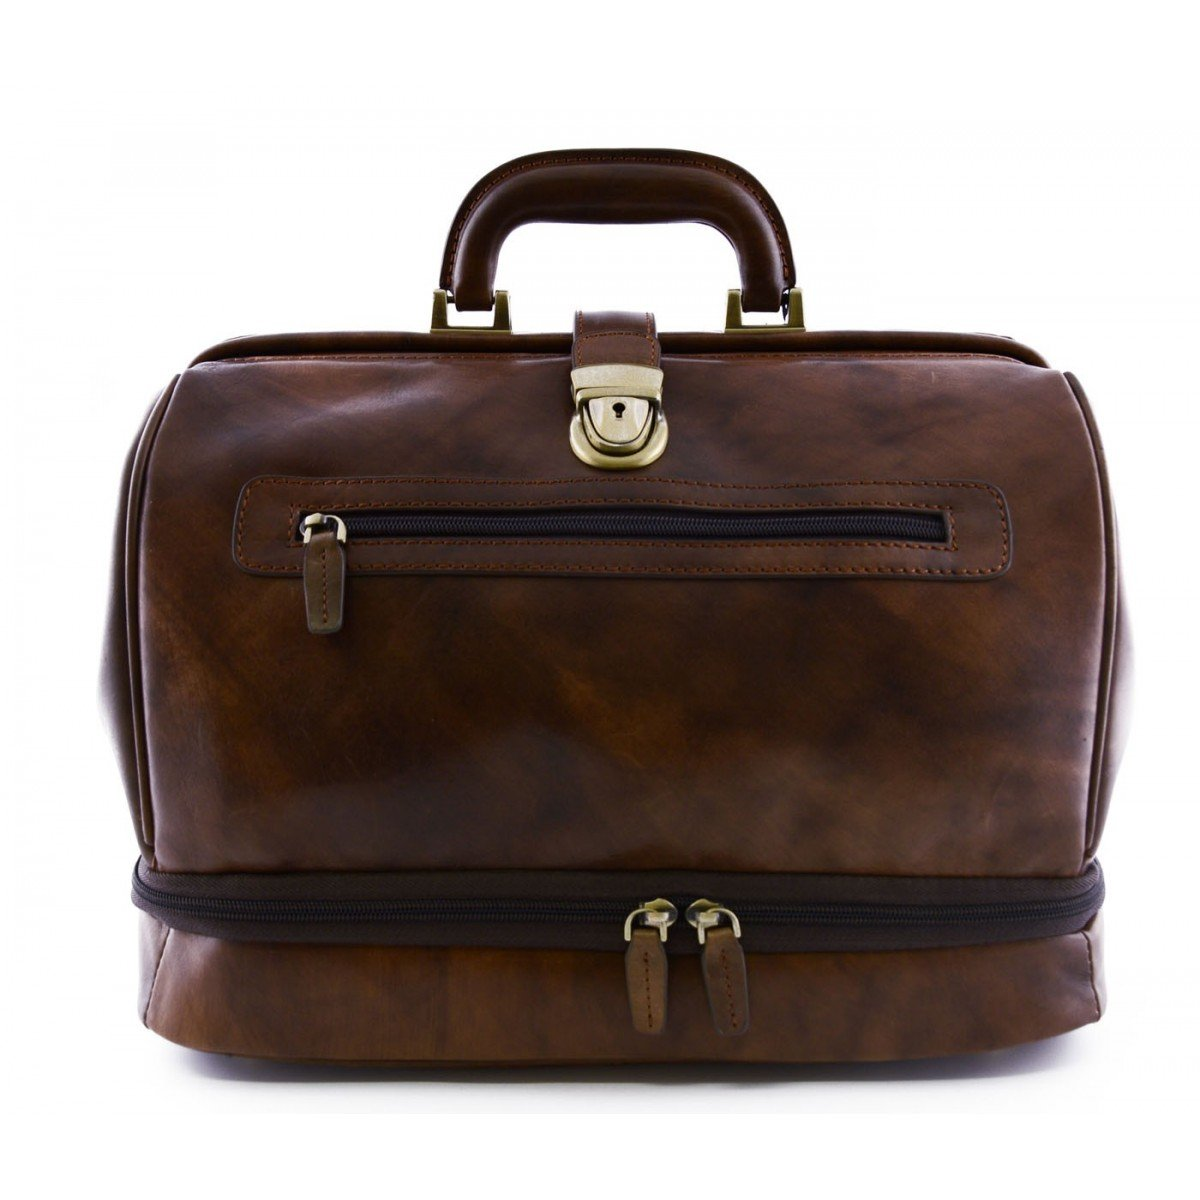 Made In Italy Genuine Leather Doctor Bag, Double Bottom And Front Pocket Color Brown - Business Bag   B0162924G0